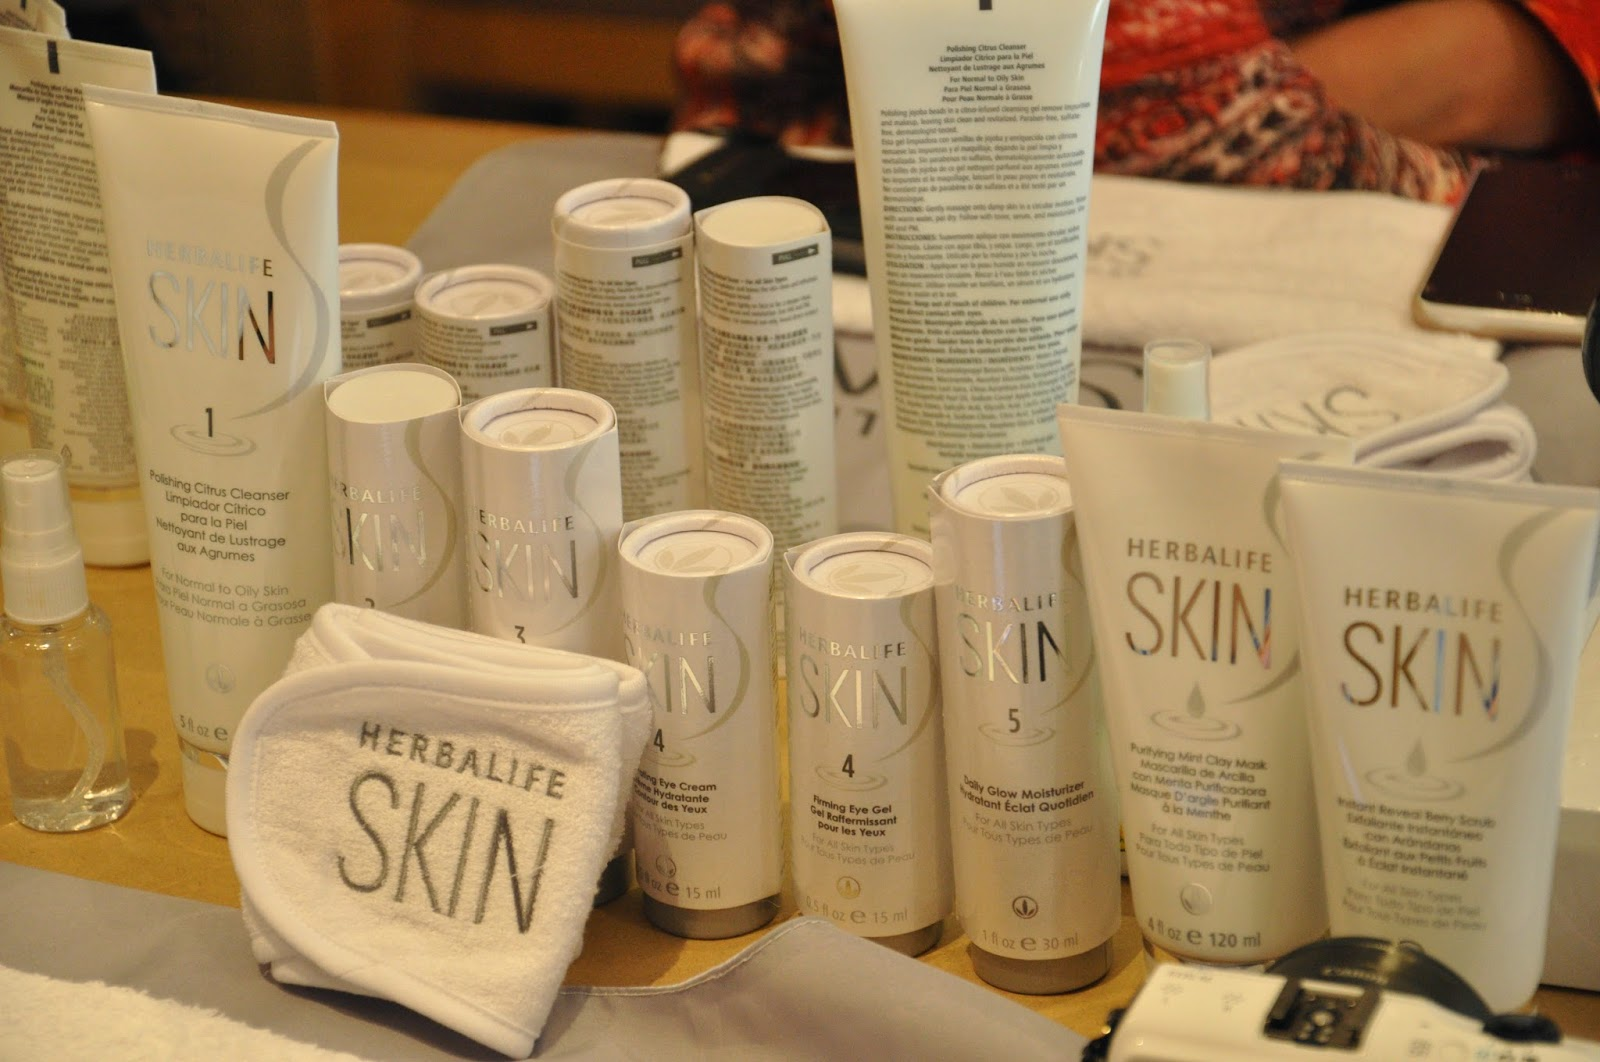 Care herbal life product skin - Herbalife Launches Herbalike Skin In The Philippines